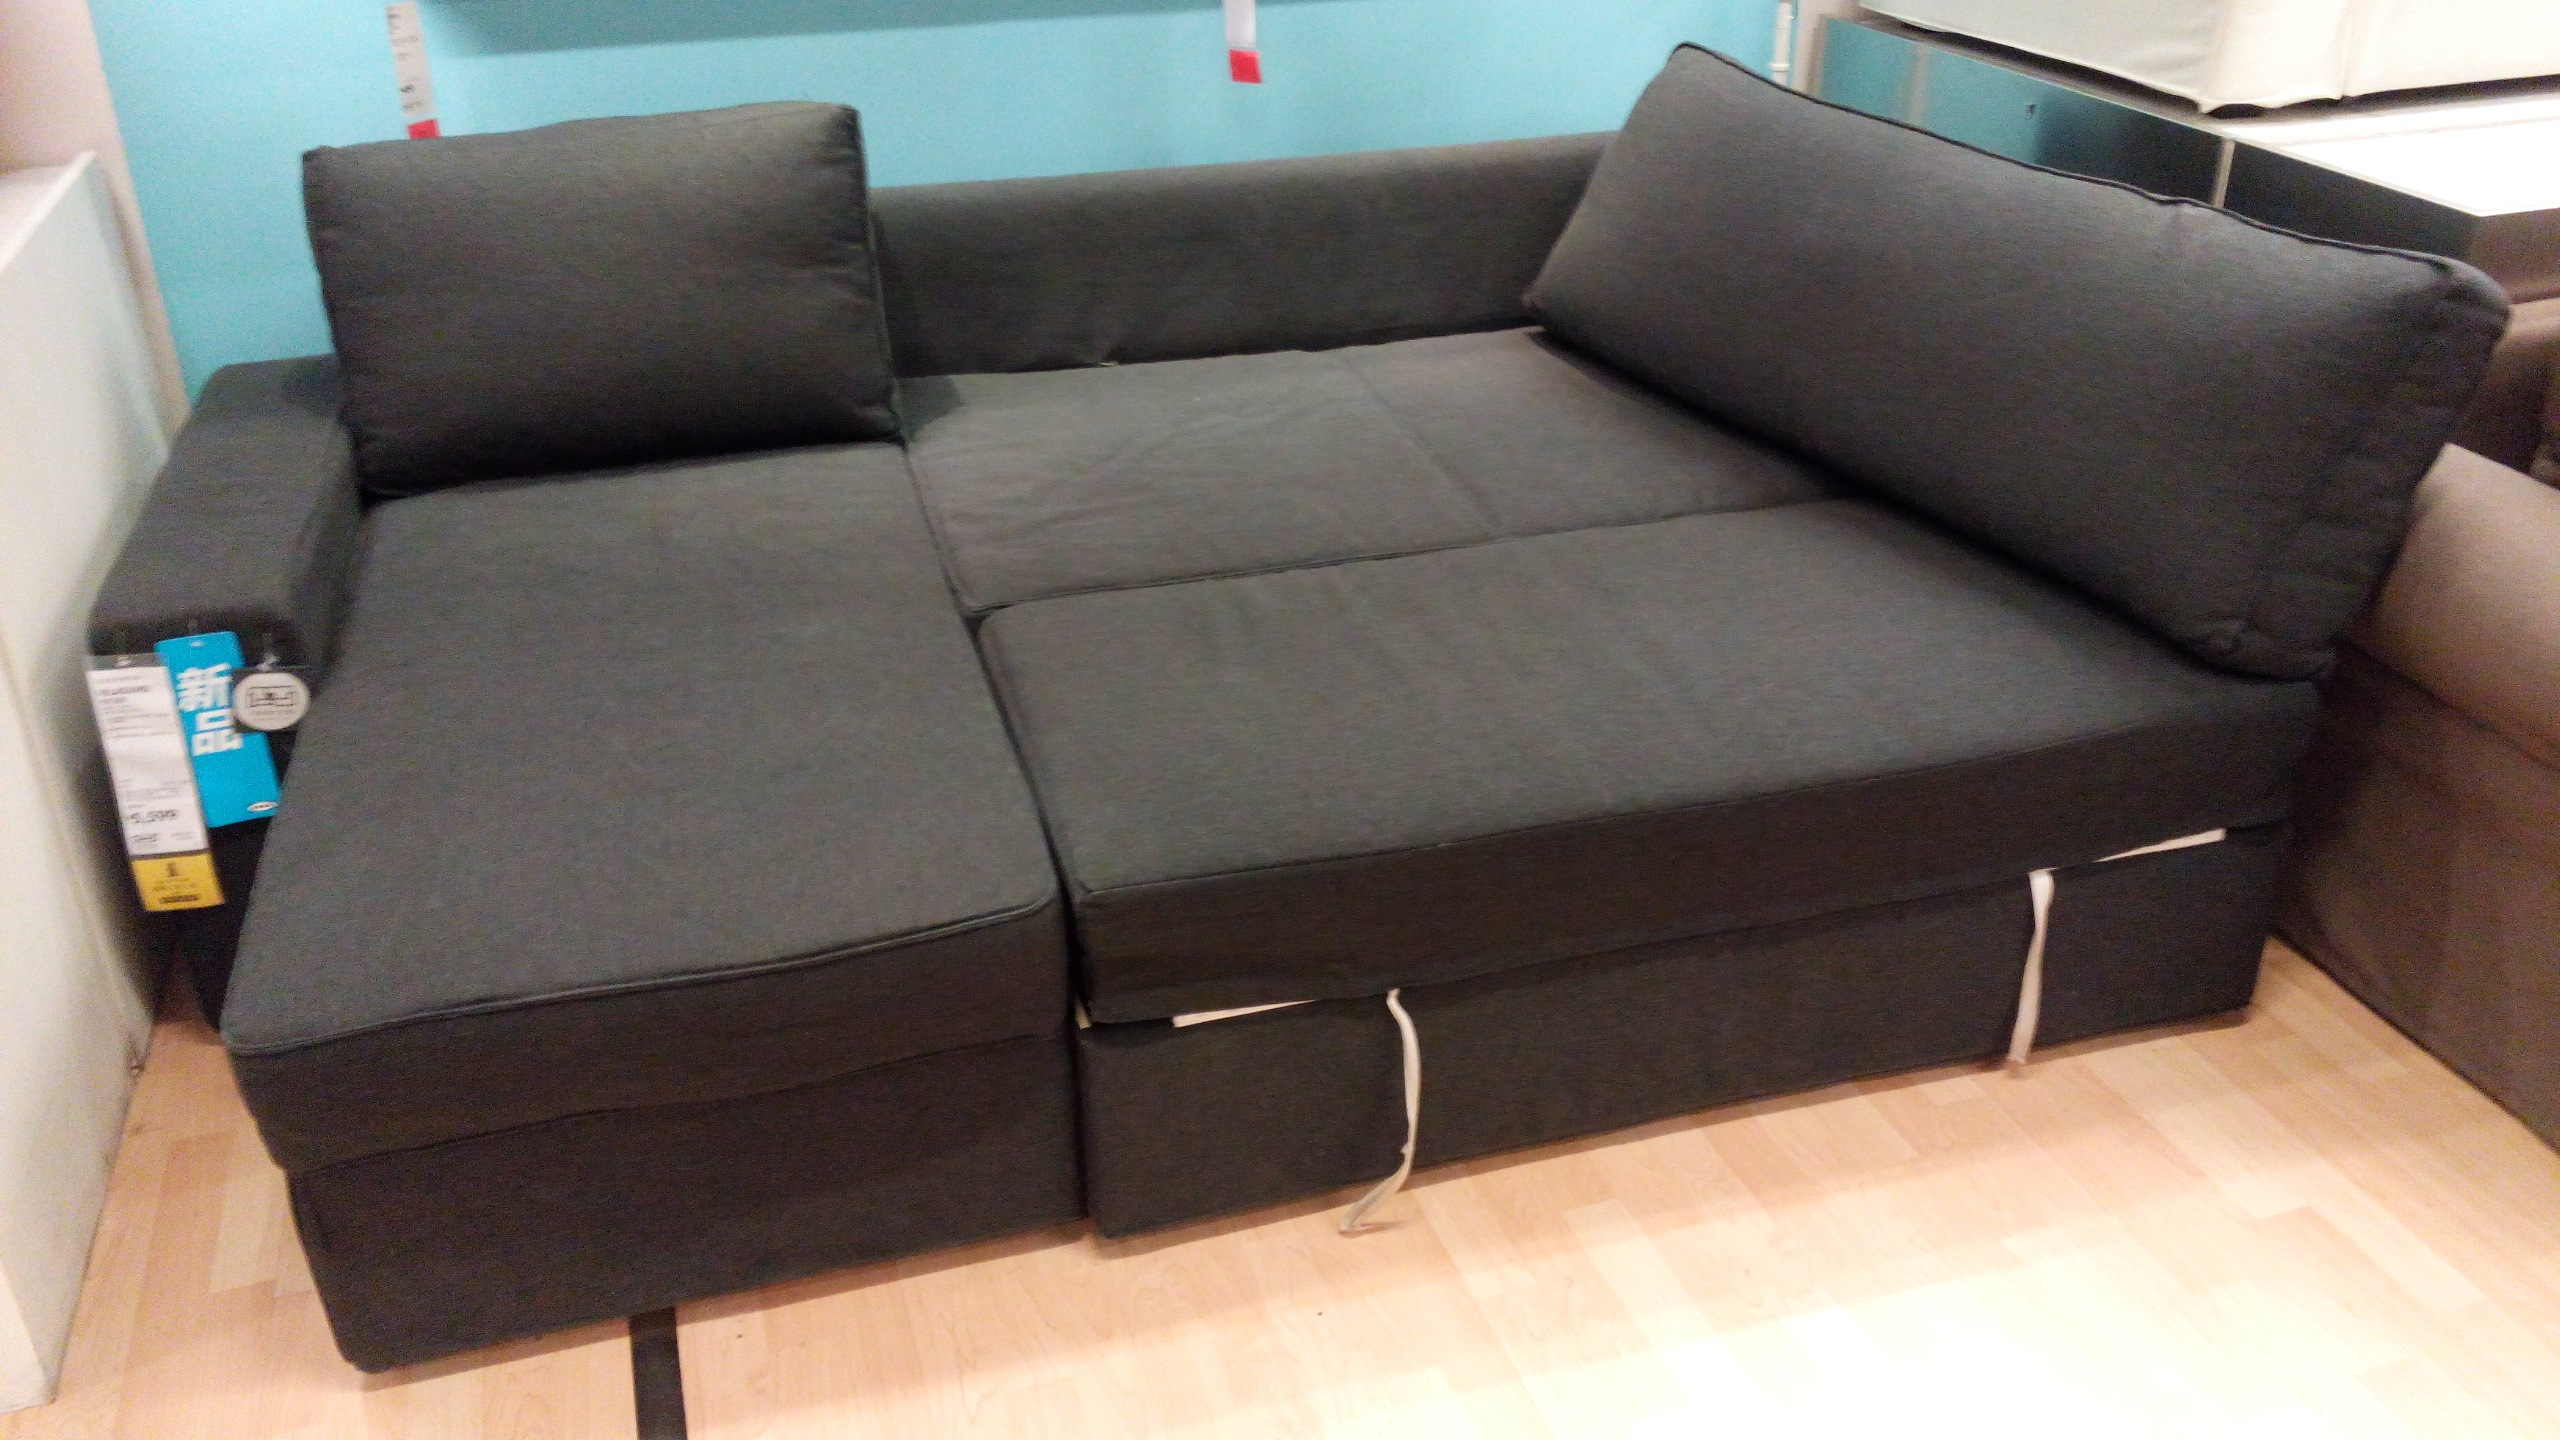 Top 10 Ikea Sofa Beds Reviewed Jan